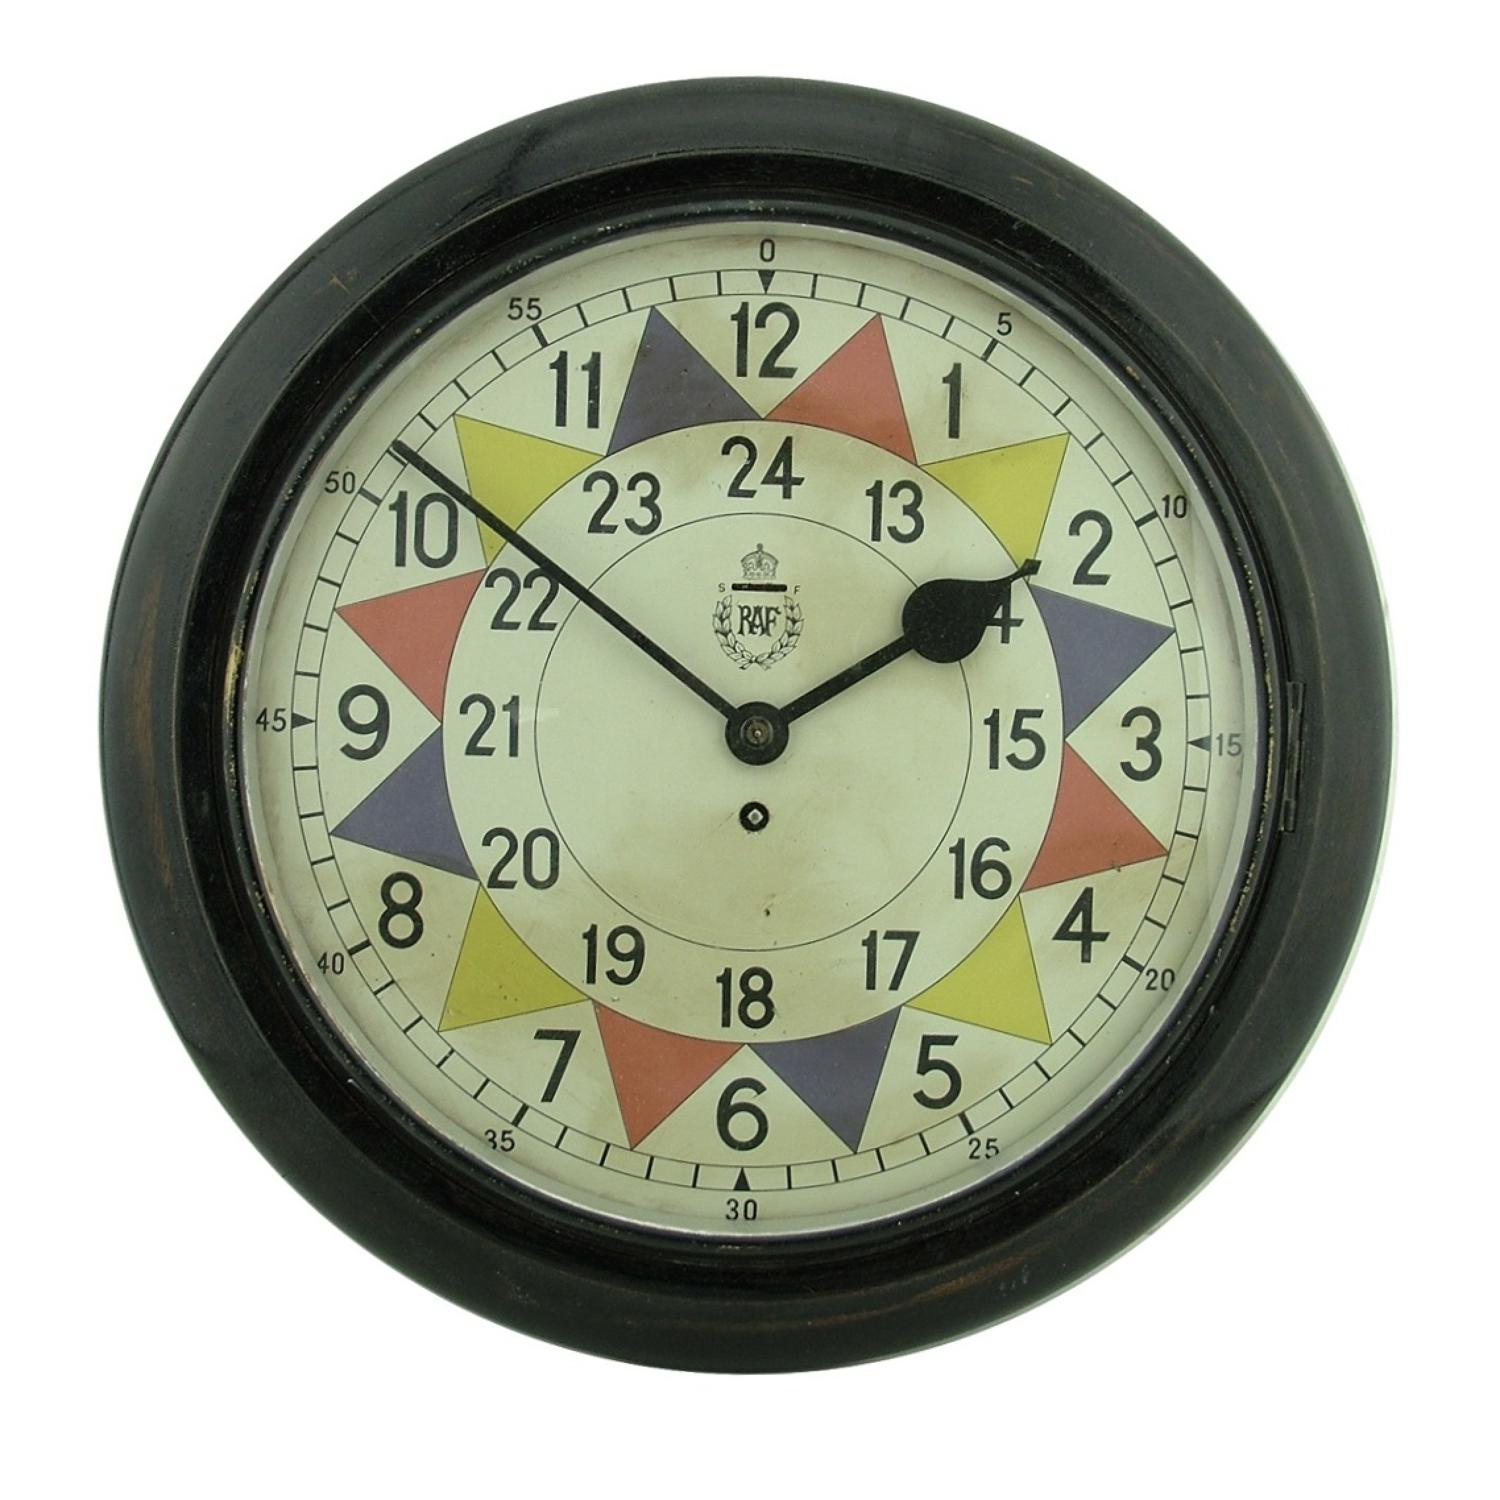 RAF station Sector clock, type 2